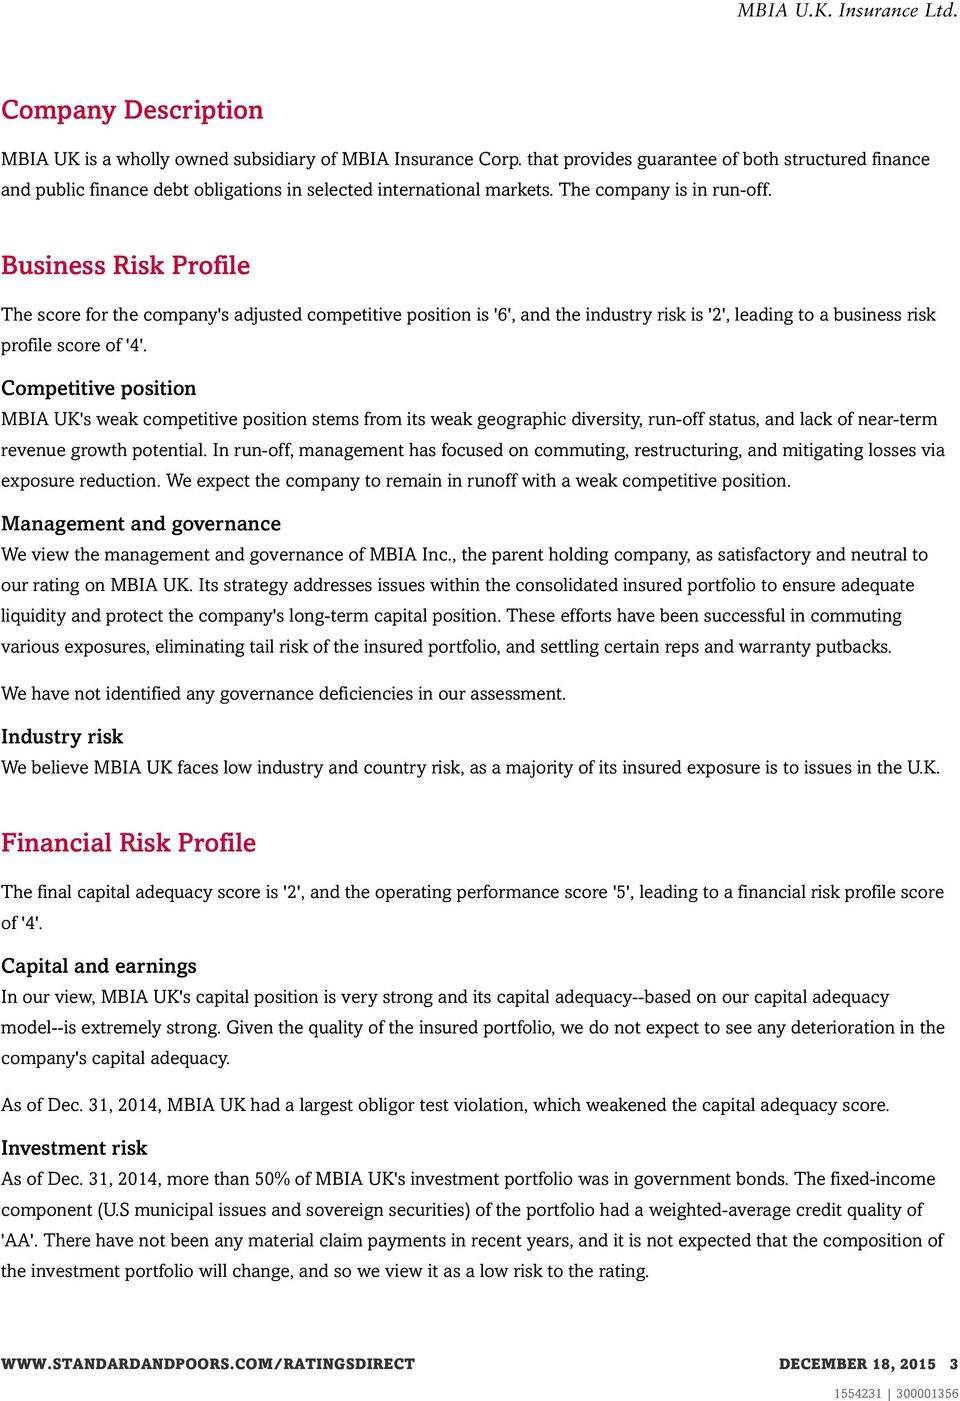 Business Risk Profile The score for the company's adjusted competitive position is '6', and the industry risk is '2', leading to a business risk profile score of '4'.